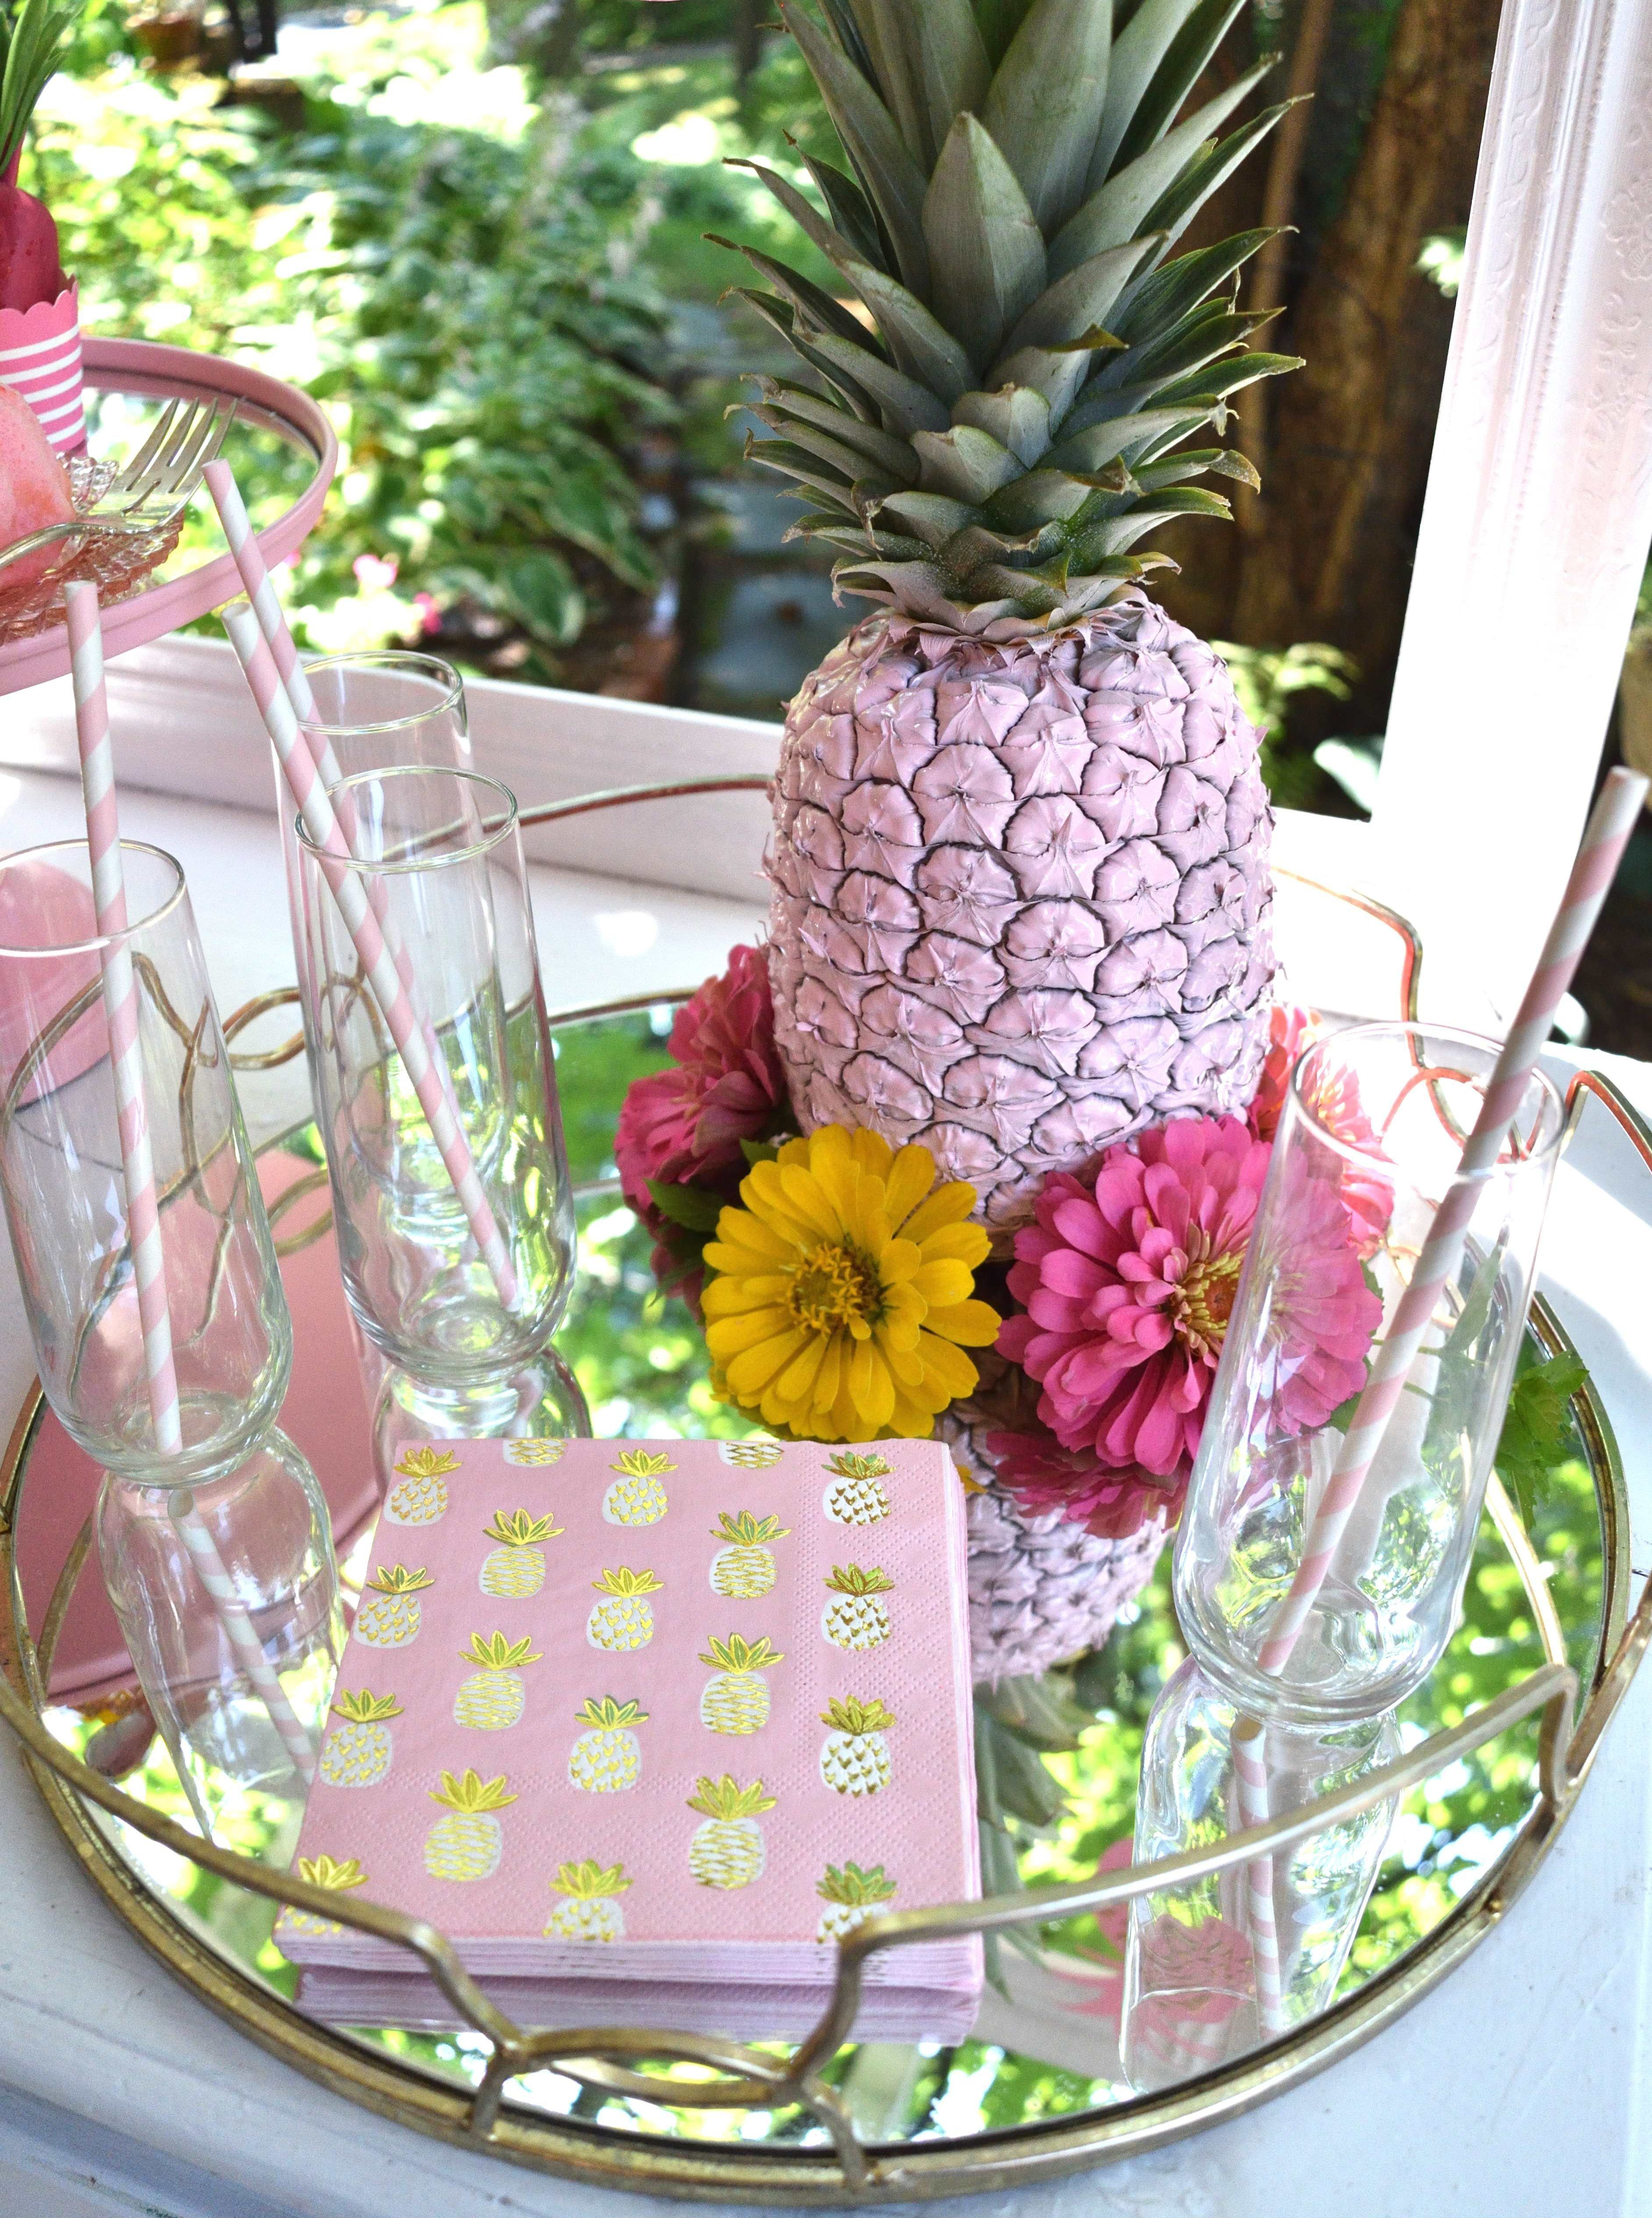 Pineapple Party Ideas For Summer Fun See Some Festive Color Options